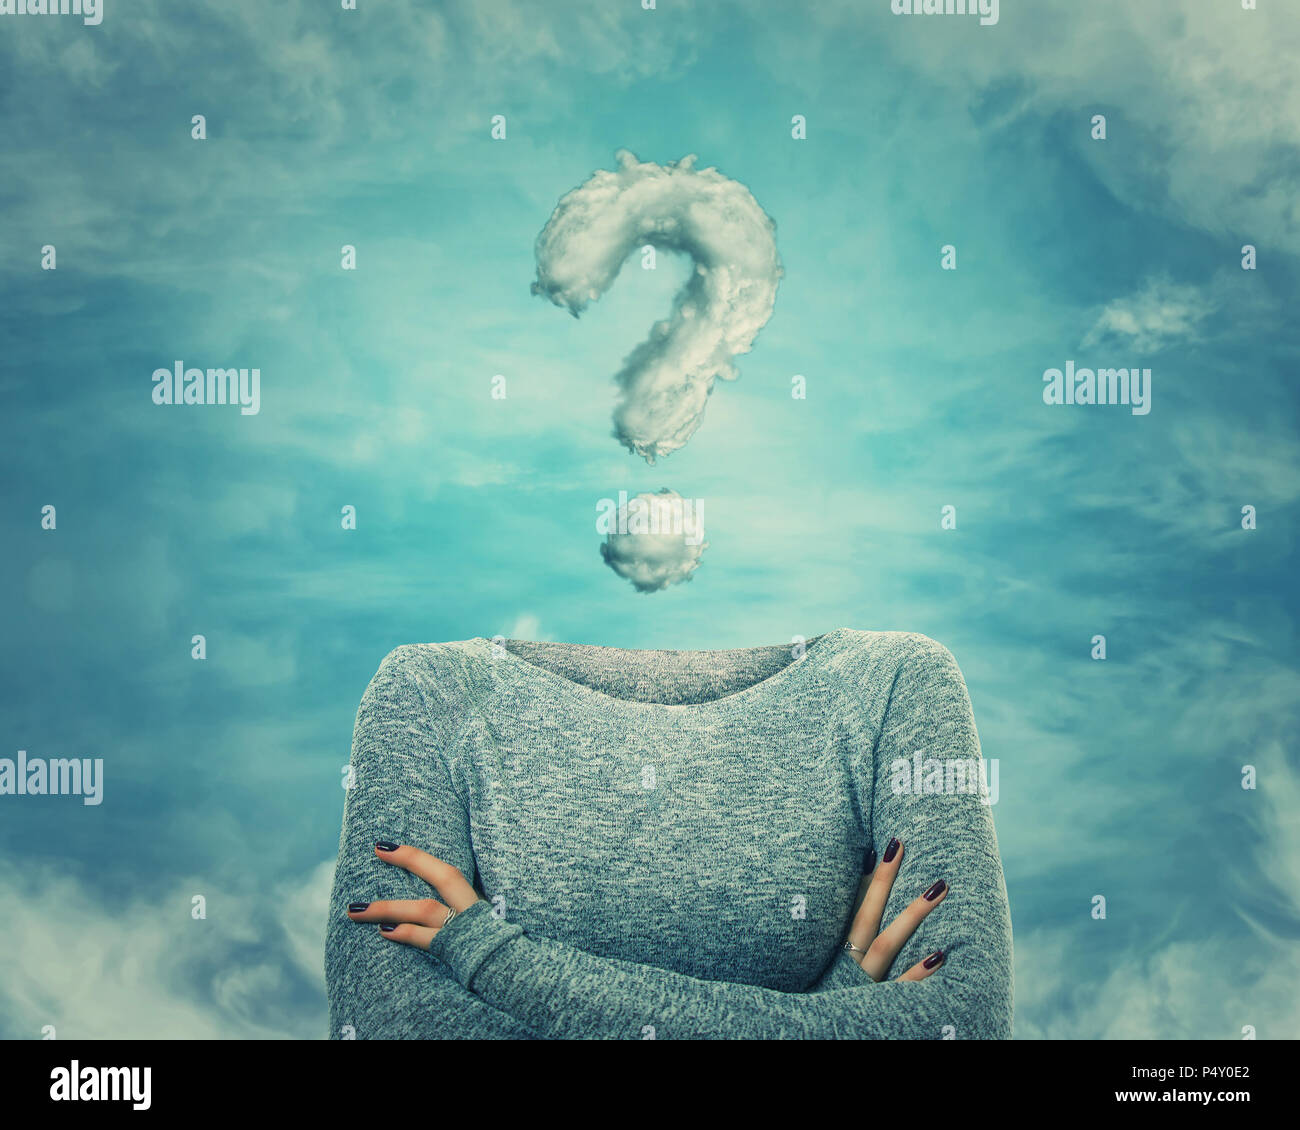 Surreal image as woman with crossed hands and invisible face has a question mark shaped cloud instead of head. Social mask for hiding his identity. In - Stock Image